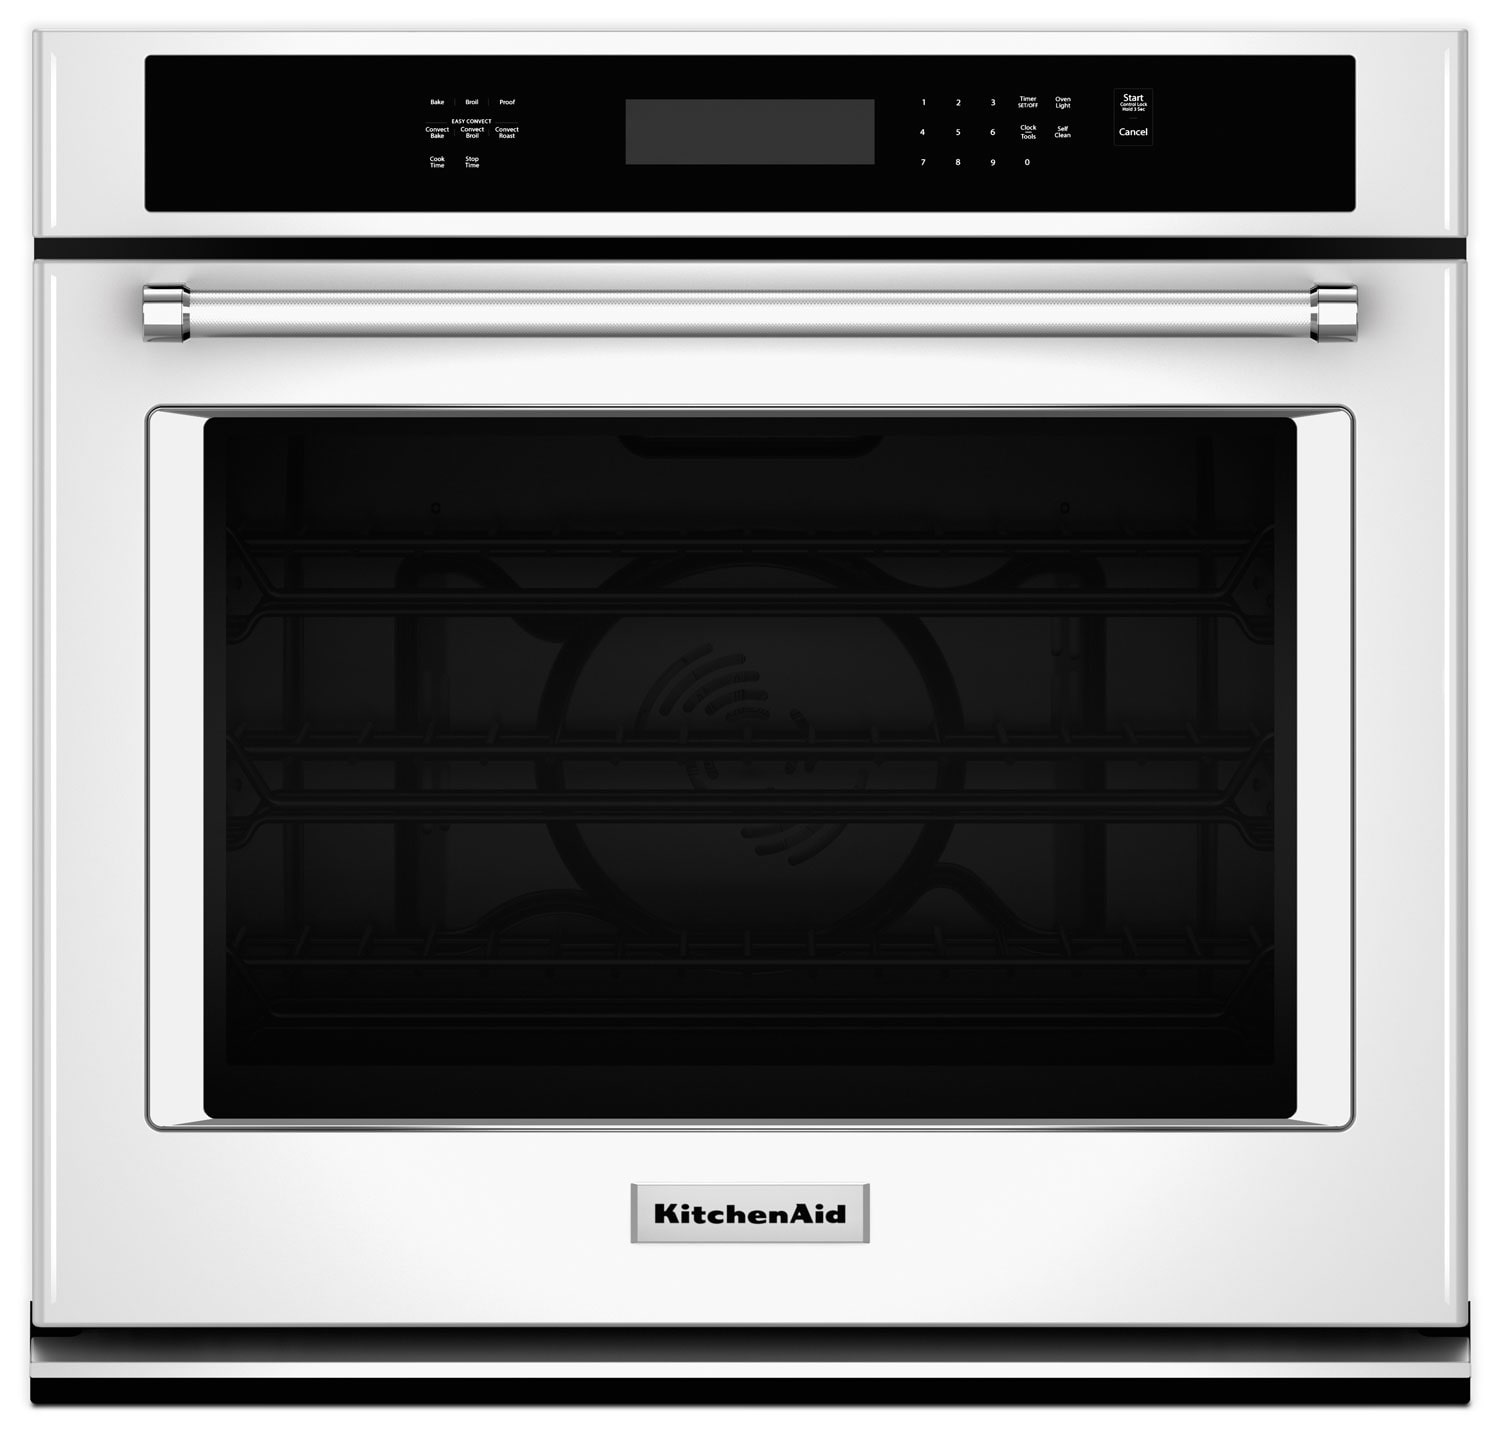 KitchenAid 4.3 Cu. Ft. Single Wall Oven with Even-Heat™ True Convection - White